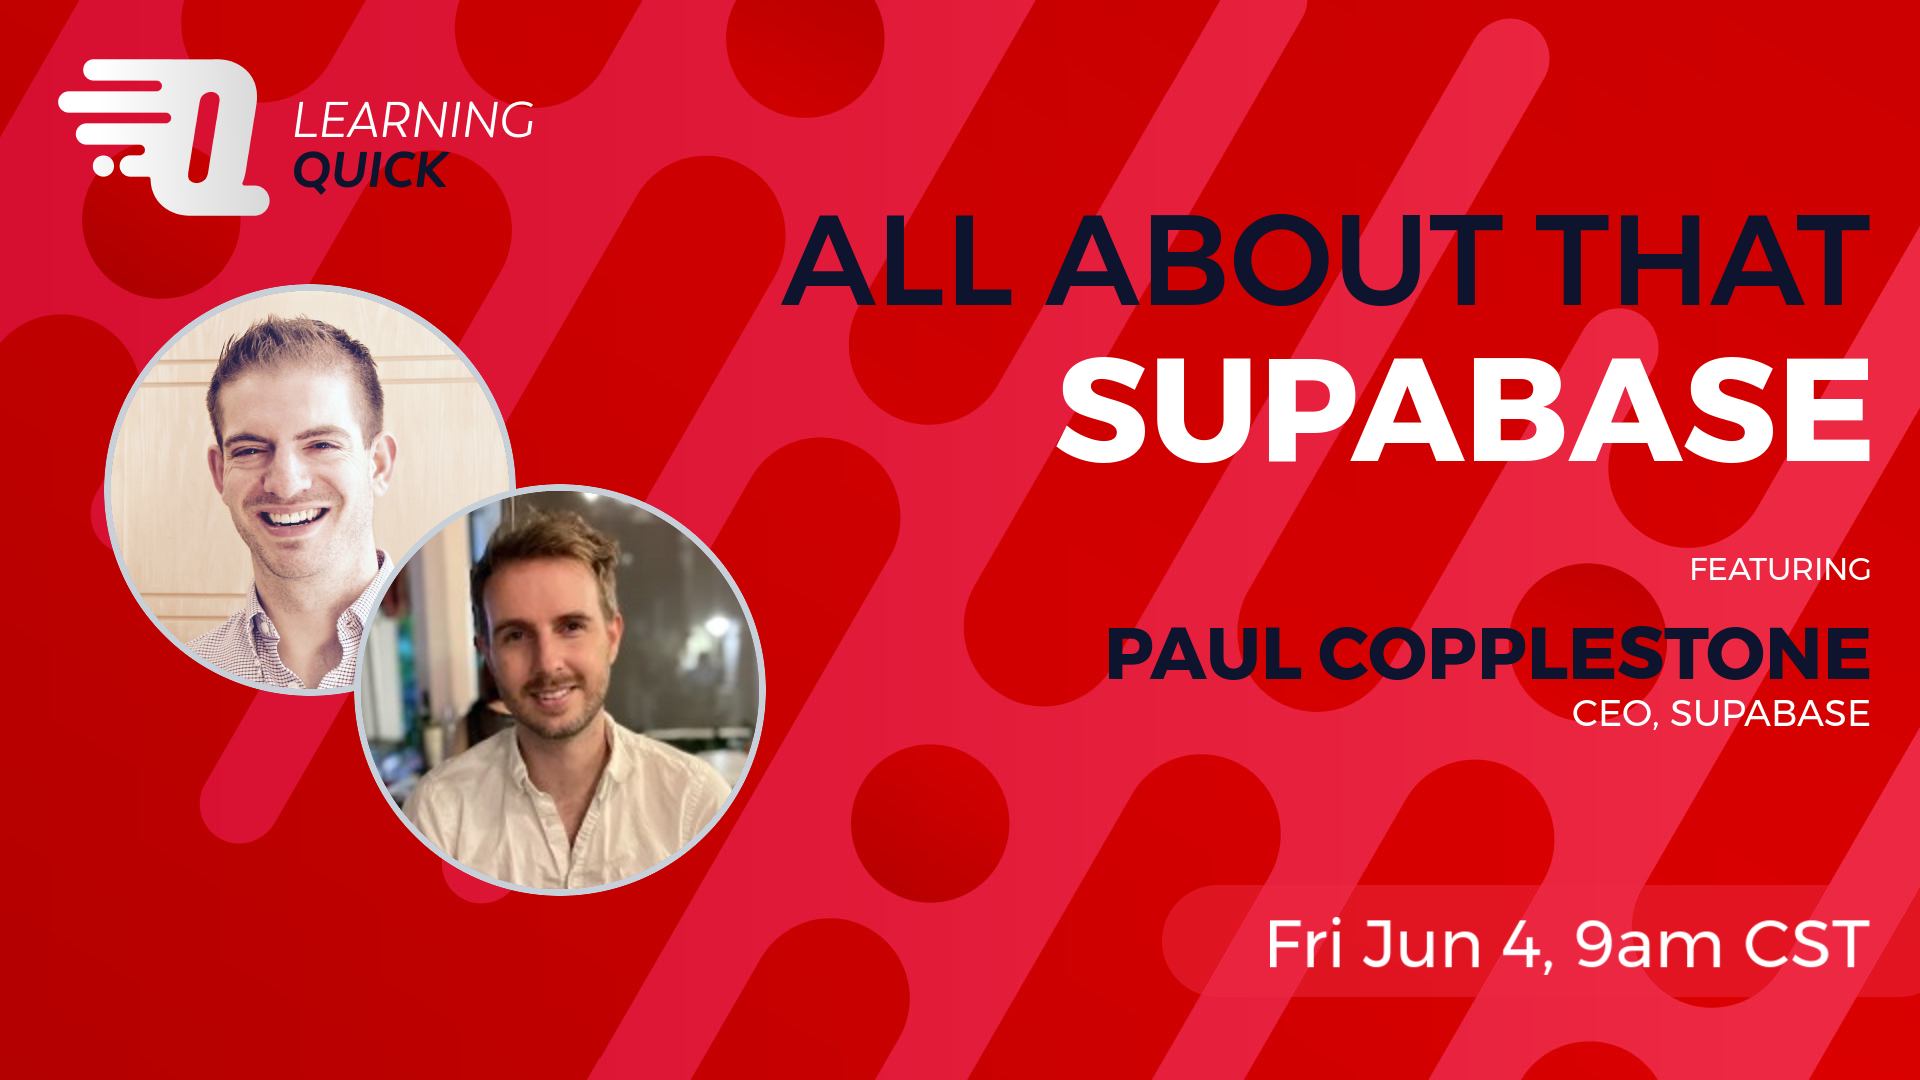 All About That Supabase with Paul Copplestone